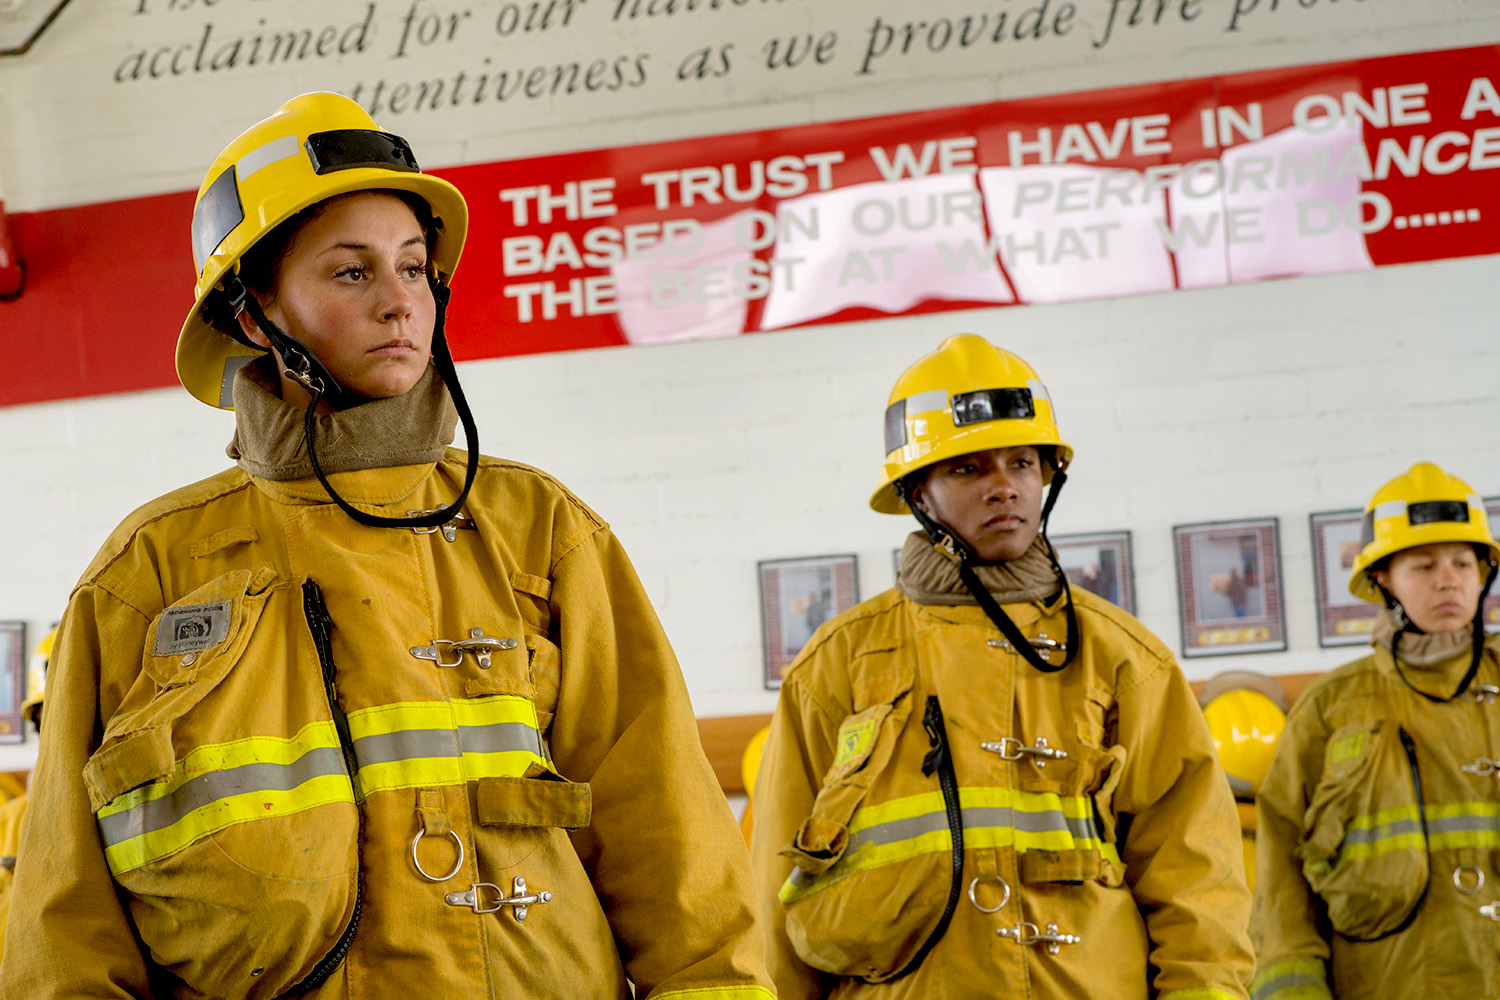 Women fire fighters ready to get to work.